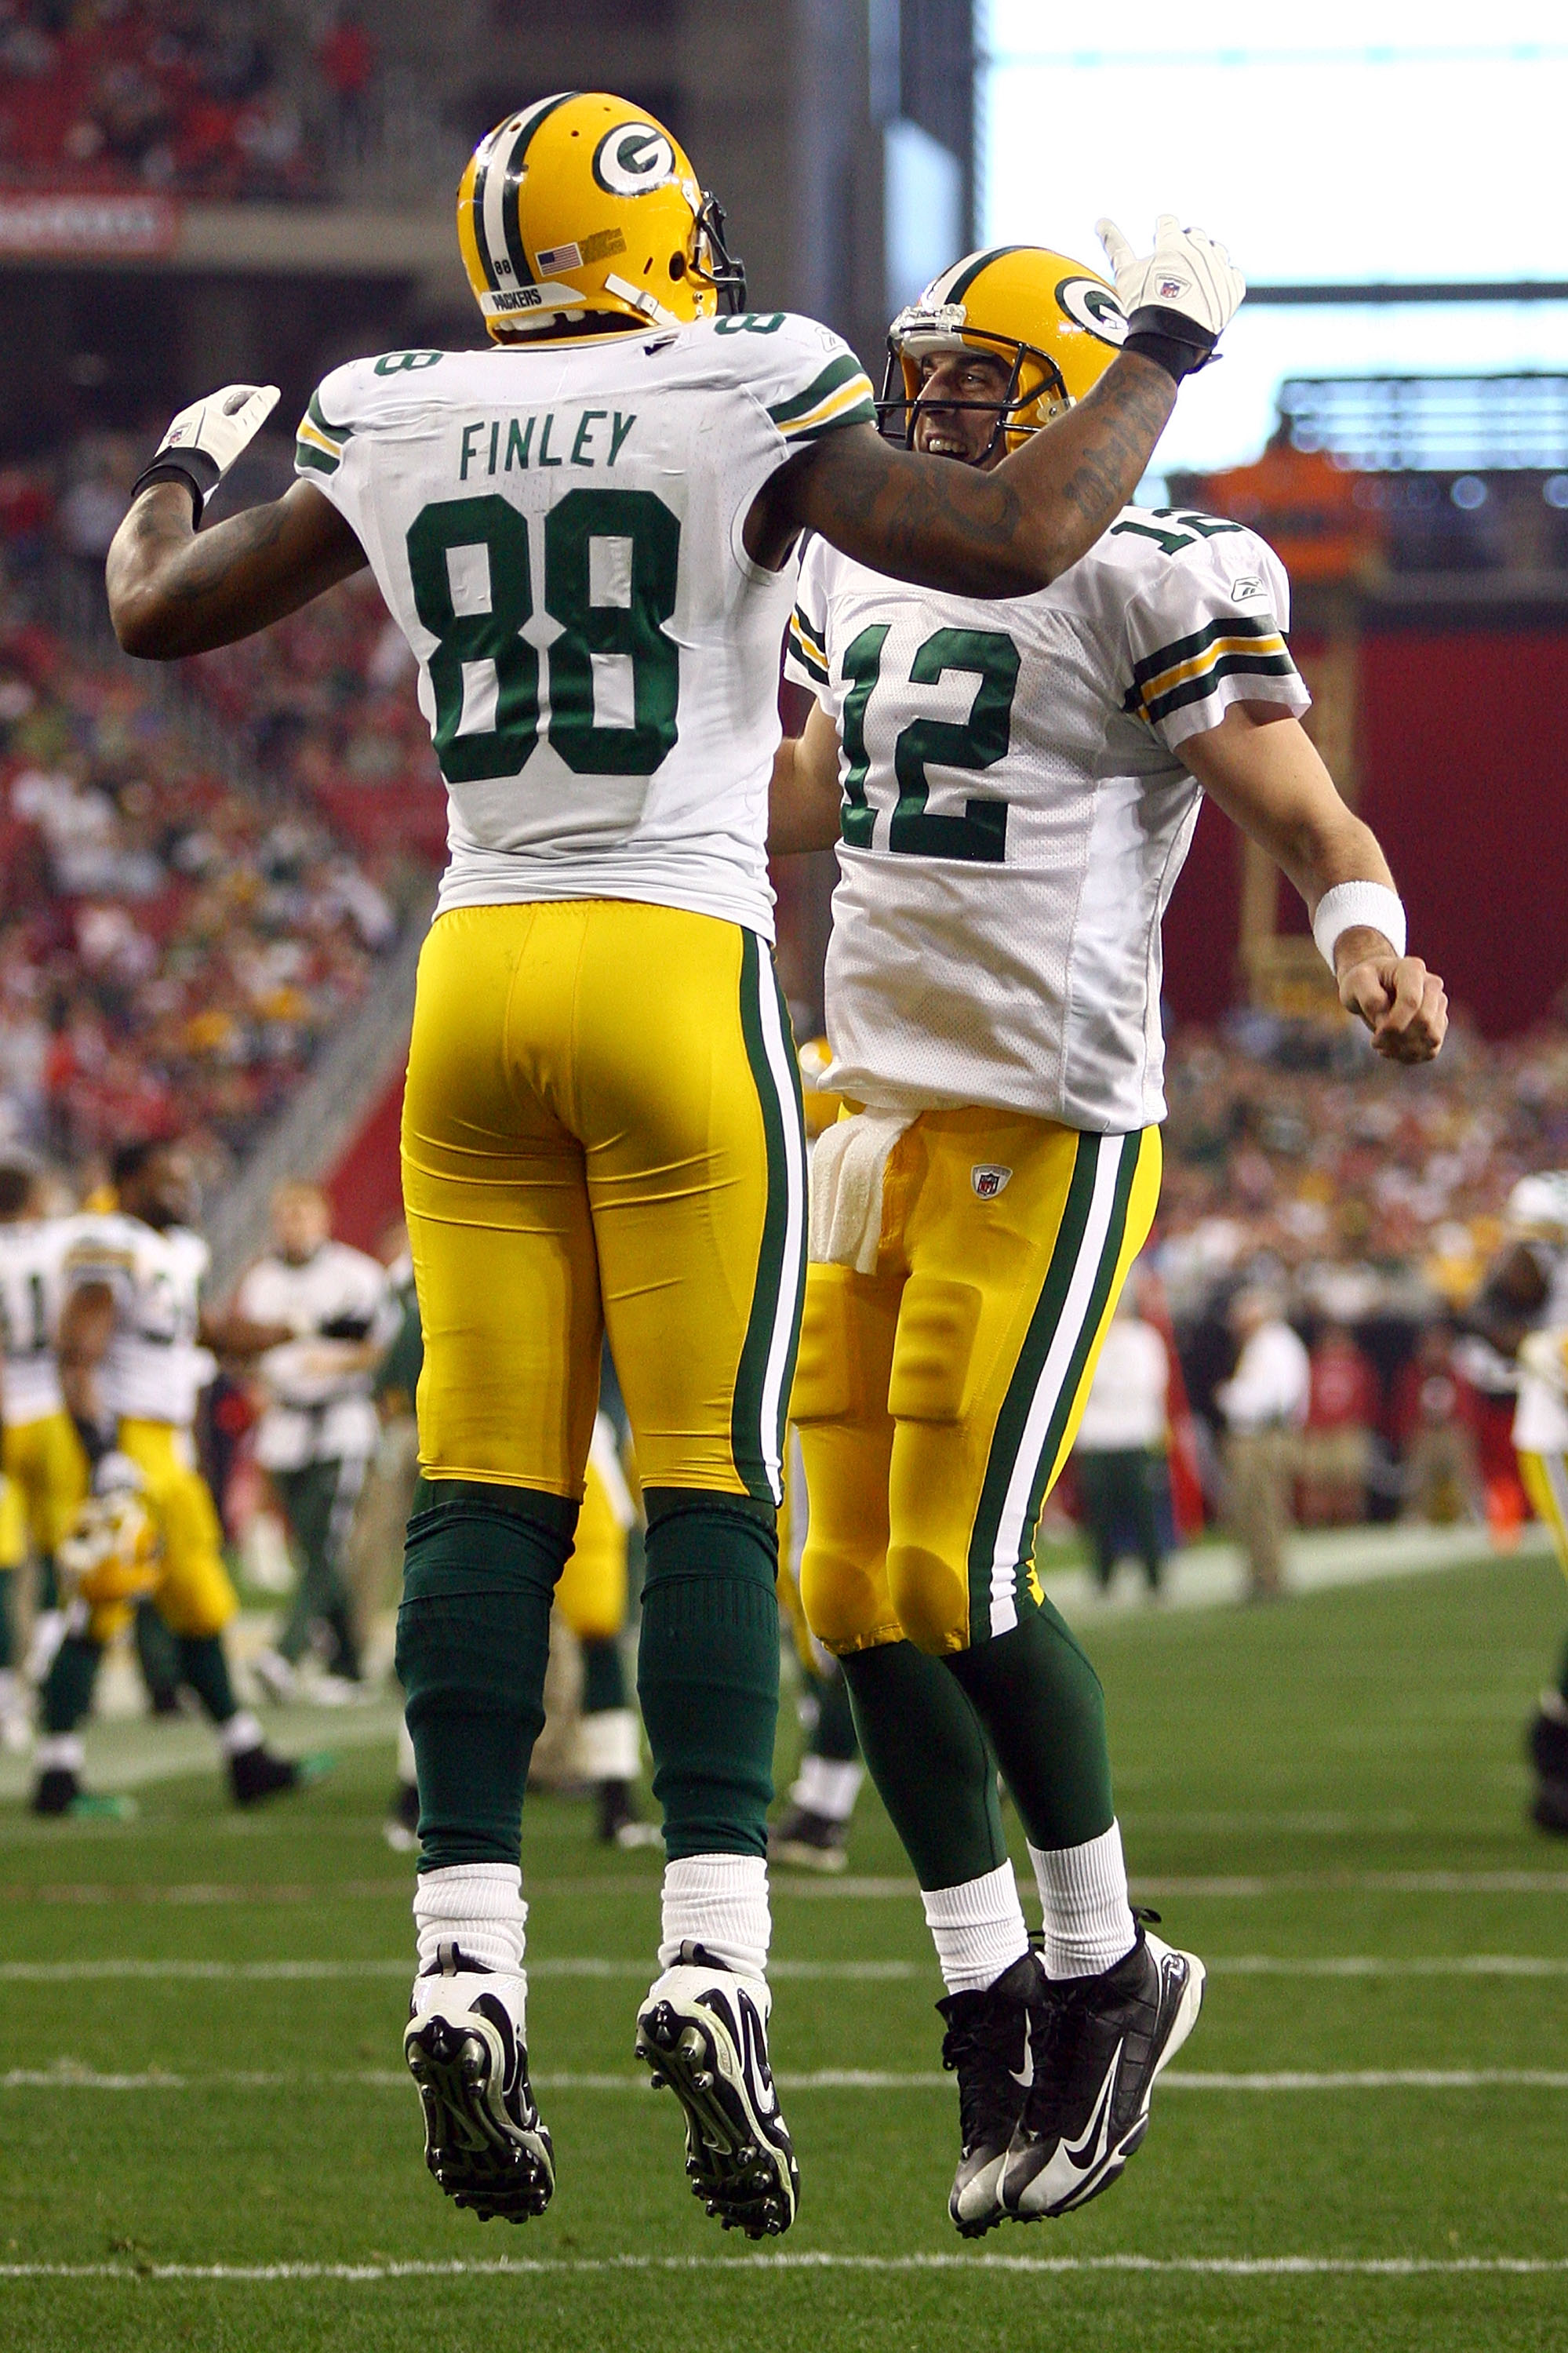 GLENDALE, AZ - JANUARY 03:  Jermichael Finley #88 of the Green Bay Packers and quarterback Aaron Rodgers #12 celebrate after Finley catches a five-yard touchdown against the Arizona Cardinals in the third quarter at University of Phoenix Stadium on Januar